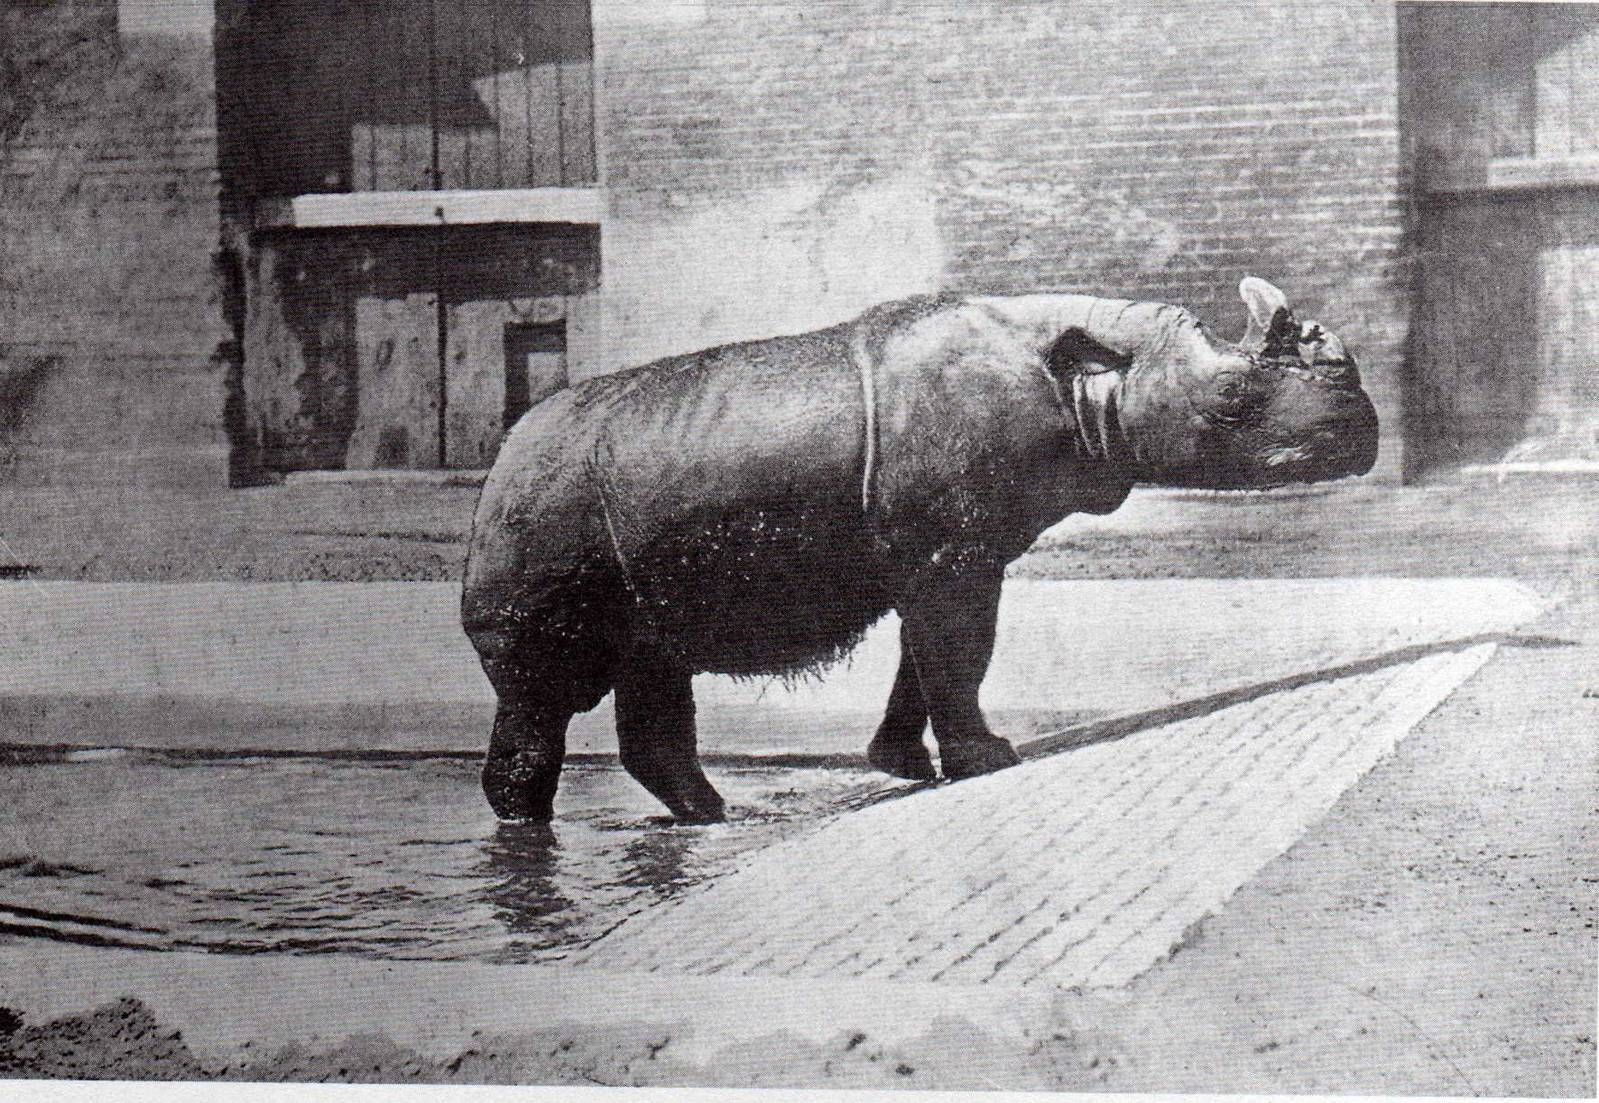 Nature civilized: A cultural history of American zoos, 1870--1940